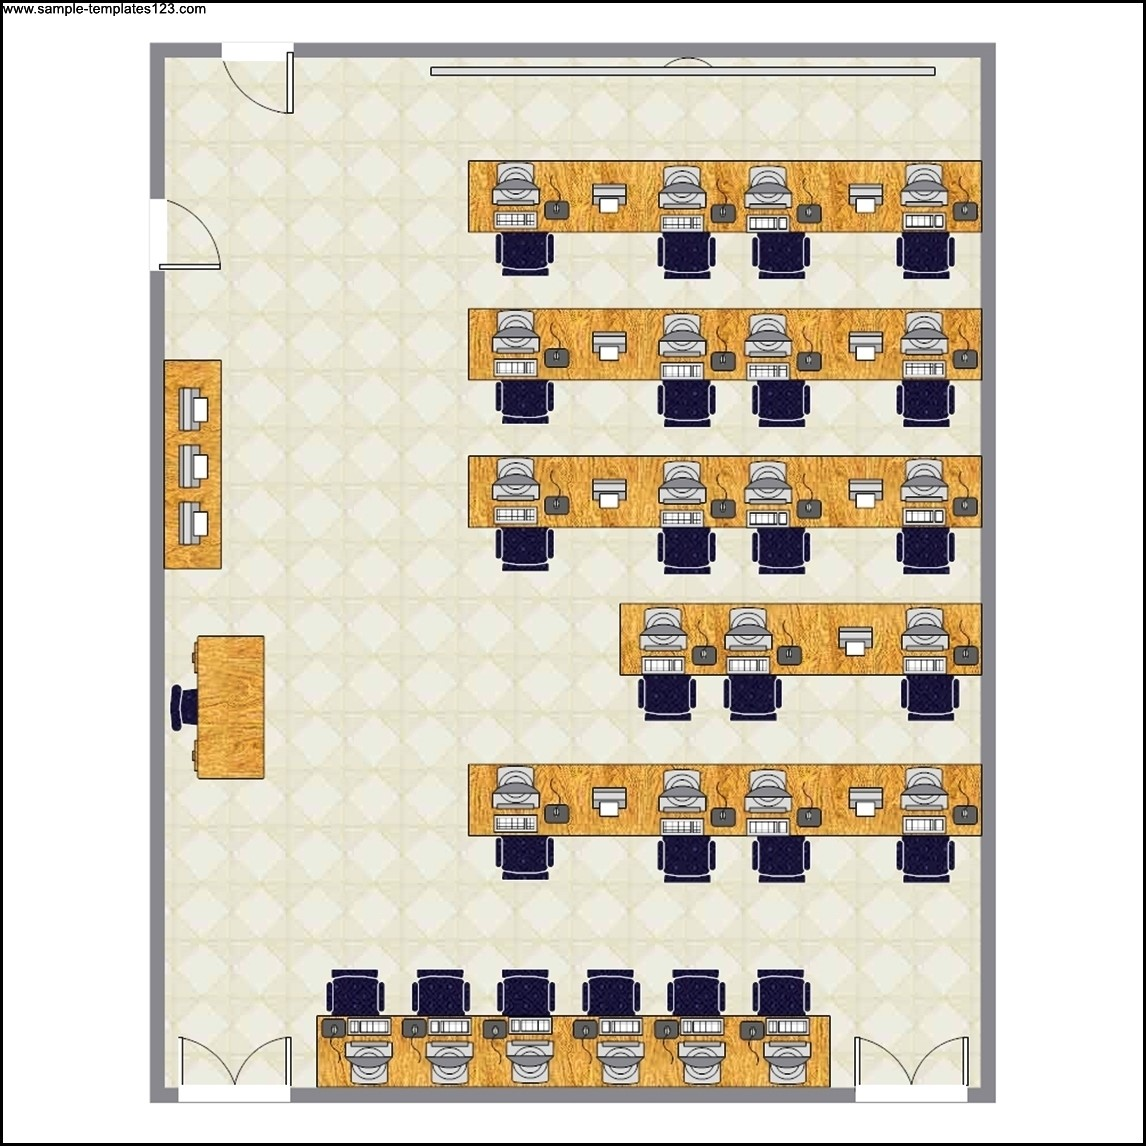 Computer Lab Seating Chart Template Sample Templates Sample